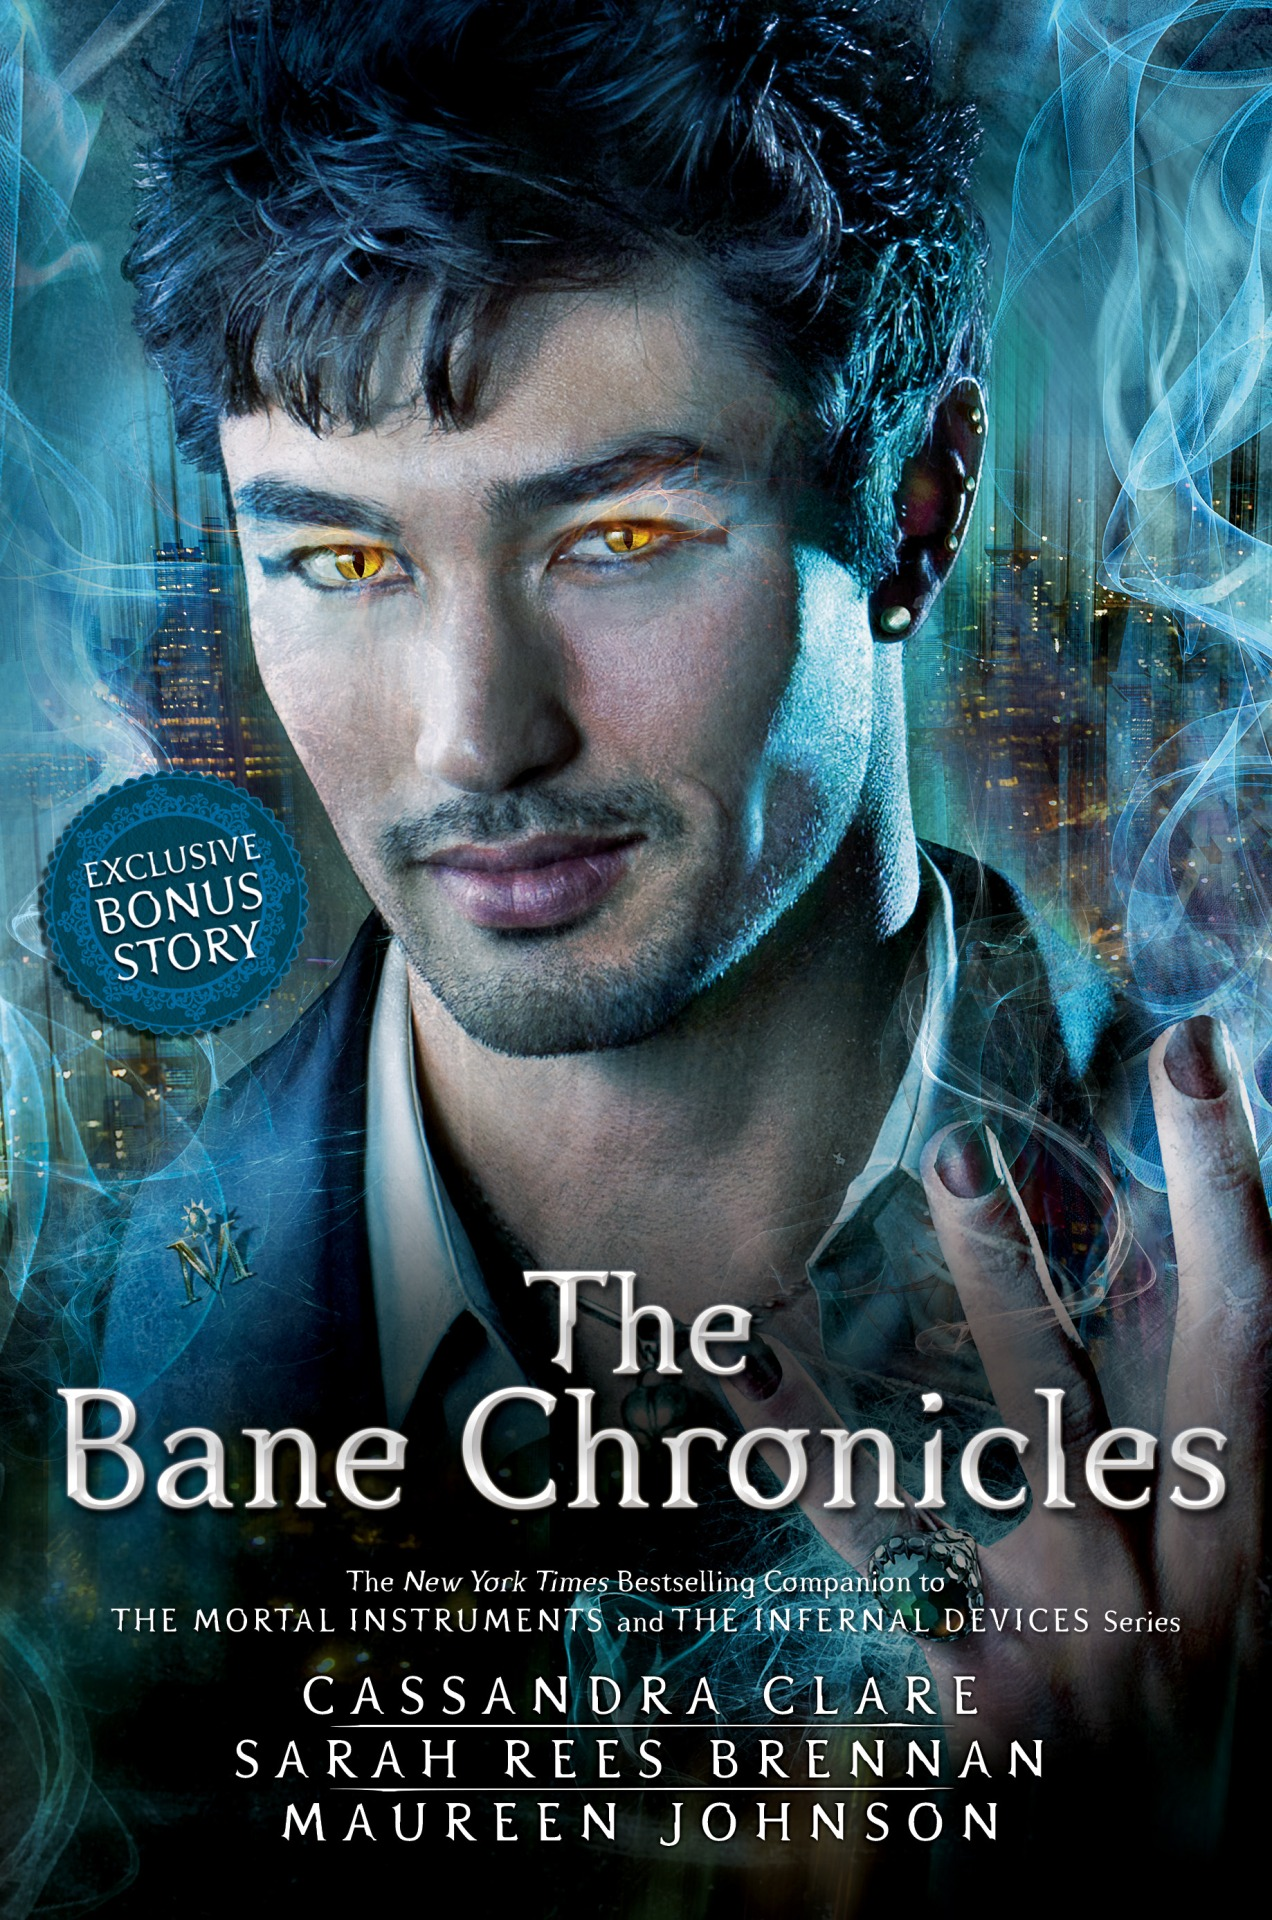 sarahreesbrennan: cassandraclare: Cassie, will there be a whole new cover for The Bane Chronicles' print edition? — addictedtothese Here it is! Magnus' pretty face, revealed in honor of the release of the last of the Bane Chronicles, The Course of True Love (And First Dates)  which details Magnus' first date with Alec, and how it went horribly wrong and then oh so right. :) The print edition will release in November, and has a special bonus mini-story in it as a reward for those who had to wait for print. :) It also contains interstitial comics drawn by Cassandra Jean! Maureen and Sarah and I had a blast working on the Bane Chronicles. It was a fun, fantastic experience filled with terrible green jokes about Ragnor, sexy audiobook readers, and of course, lots of time spent with Magnus, which is always a good thing. Thanks so much to everyone for your support of TBC! I echo Cassie's words. I had a lovely, lovely time, and all of Cassie's fans were super kind and embracing of us. We really tried not to let you down, because you're awesome and we know you love Cassie's world and characters and we were taking on a big responsibility! It was super fun to explore the demonier (I'm a demon-y kind of girl) side of Cassie's world with Cassie. MAUREEN: I have many excellent jokes and excellent history facts to share. SARAH: I am obsessed with characters whose names start with R and I'm GOING TO MAKE THAT CLEAR. I thank you for all your support. I hope you had half as much fun as we did. ;) I hope you guys like the cover. I know you liked the audiobook readers, because WHO WOULDN'T? *CRIES* DON'T BE OVER. *clings to book* *clings*